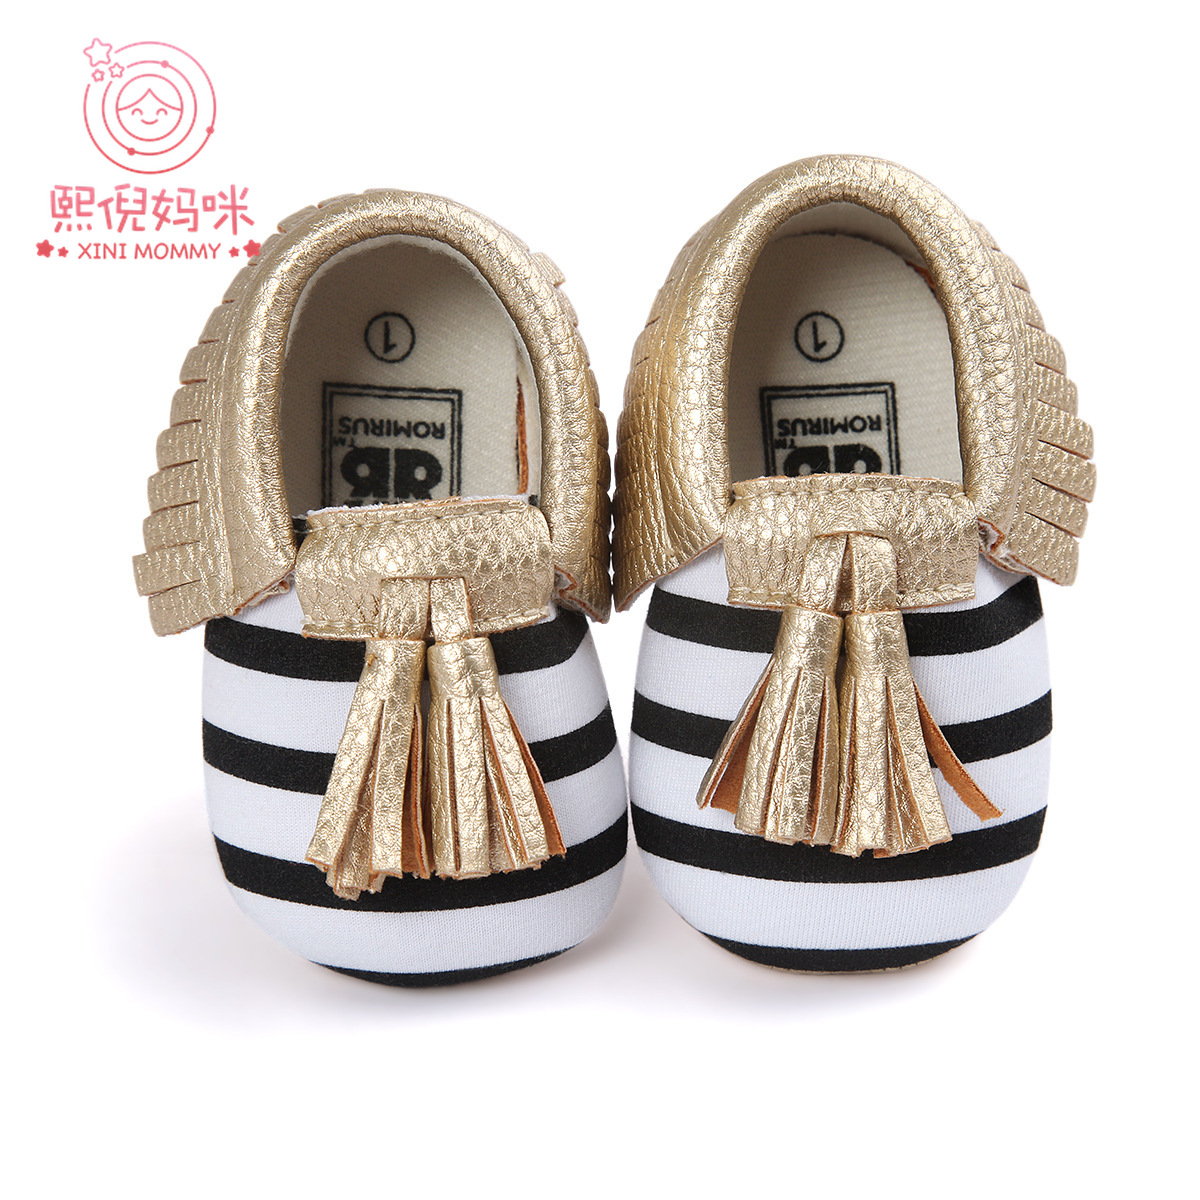 XINI MOMMY first walkers crib shoes newborn baby boy zapatos de bebe nenas baby booties newborn baby shoes YT324 in First Walkers from Mother Kids